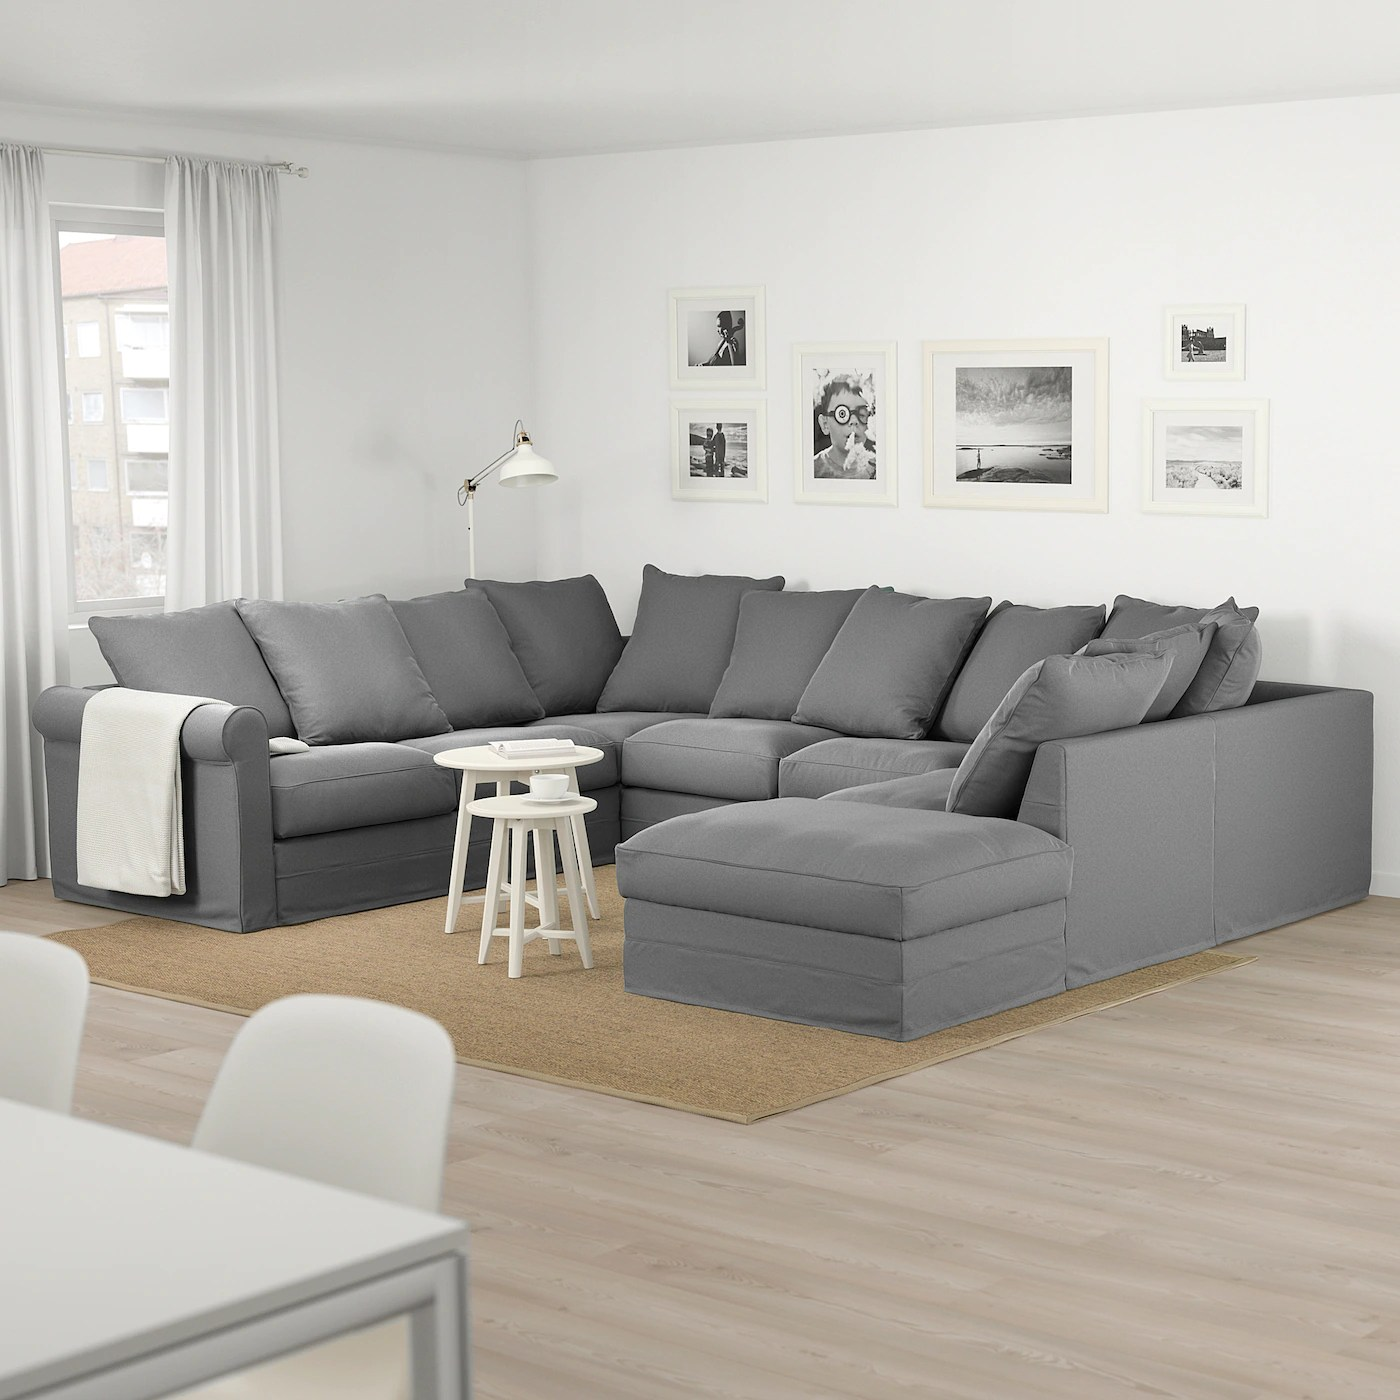 Couch U Form Grau GrÖnlid U-shaped Sofa, 6 Seat - With Open End/ljungen Medium Grey - Ikea